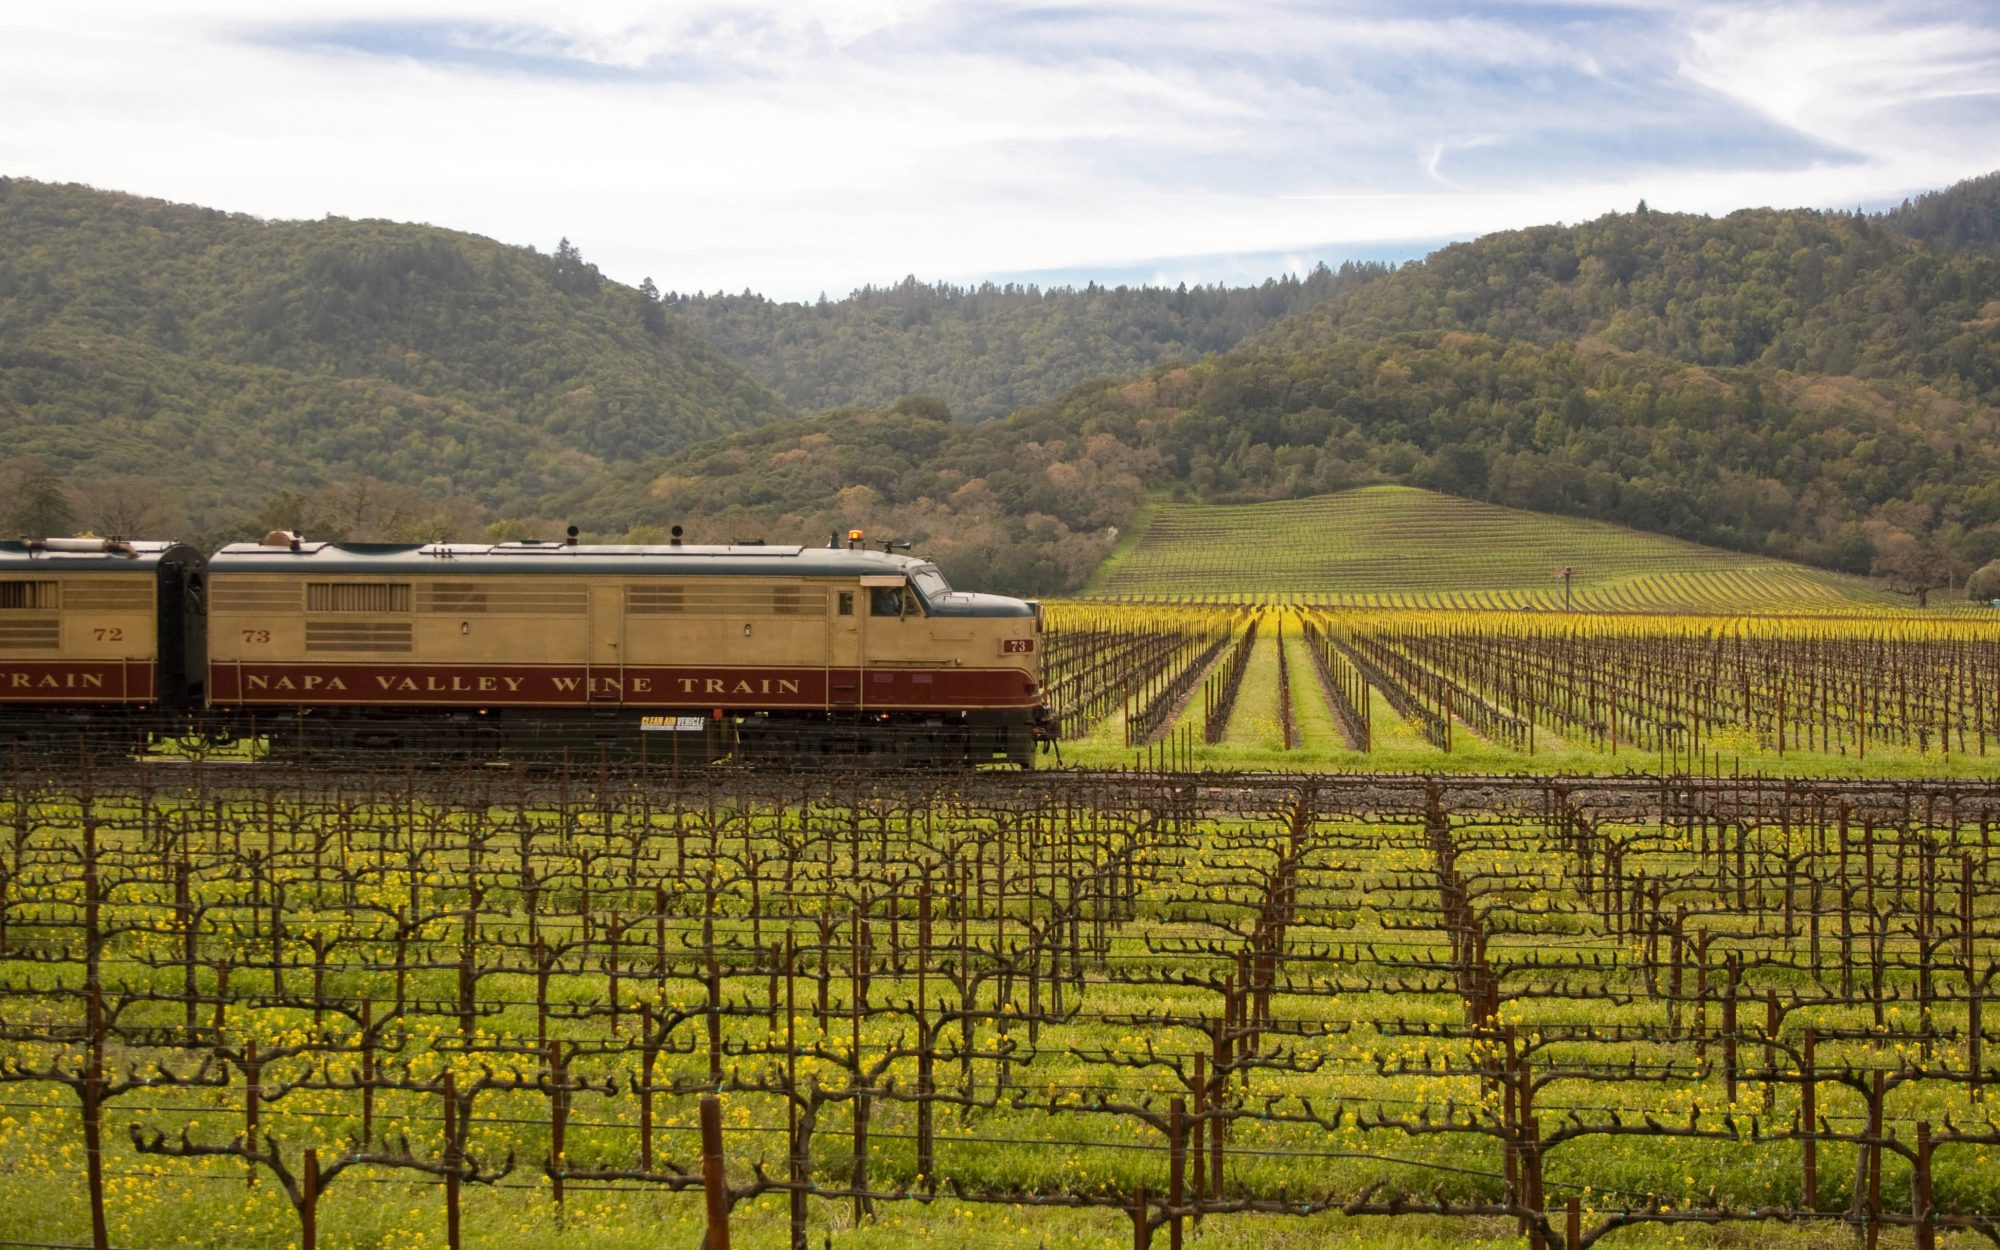 America's Most Romantic Train Trips: Napa Valley Wine Train